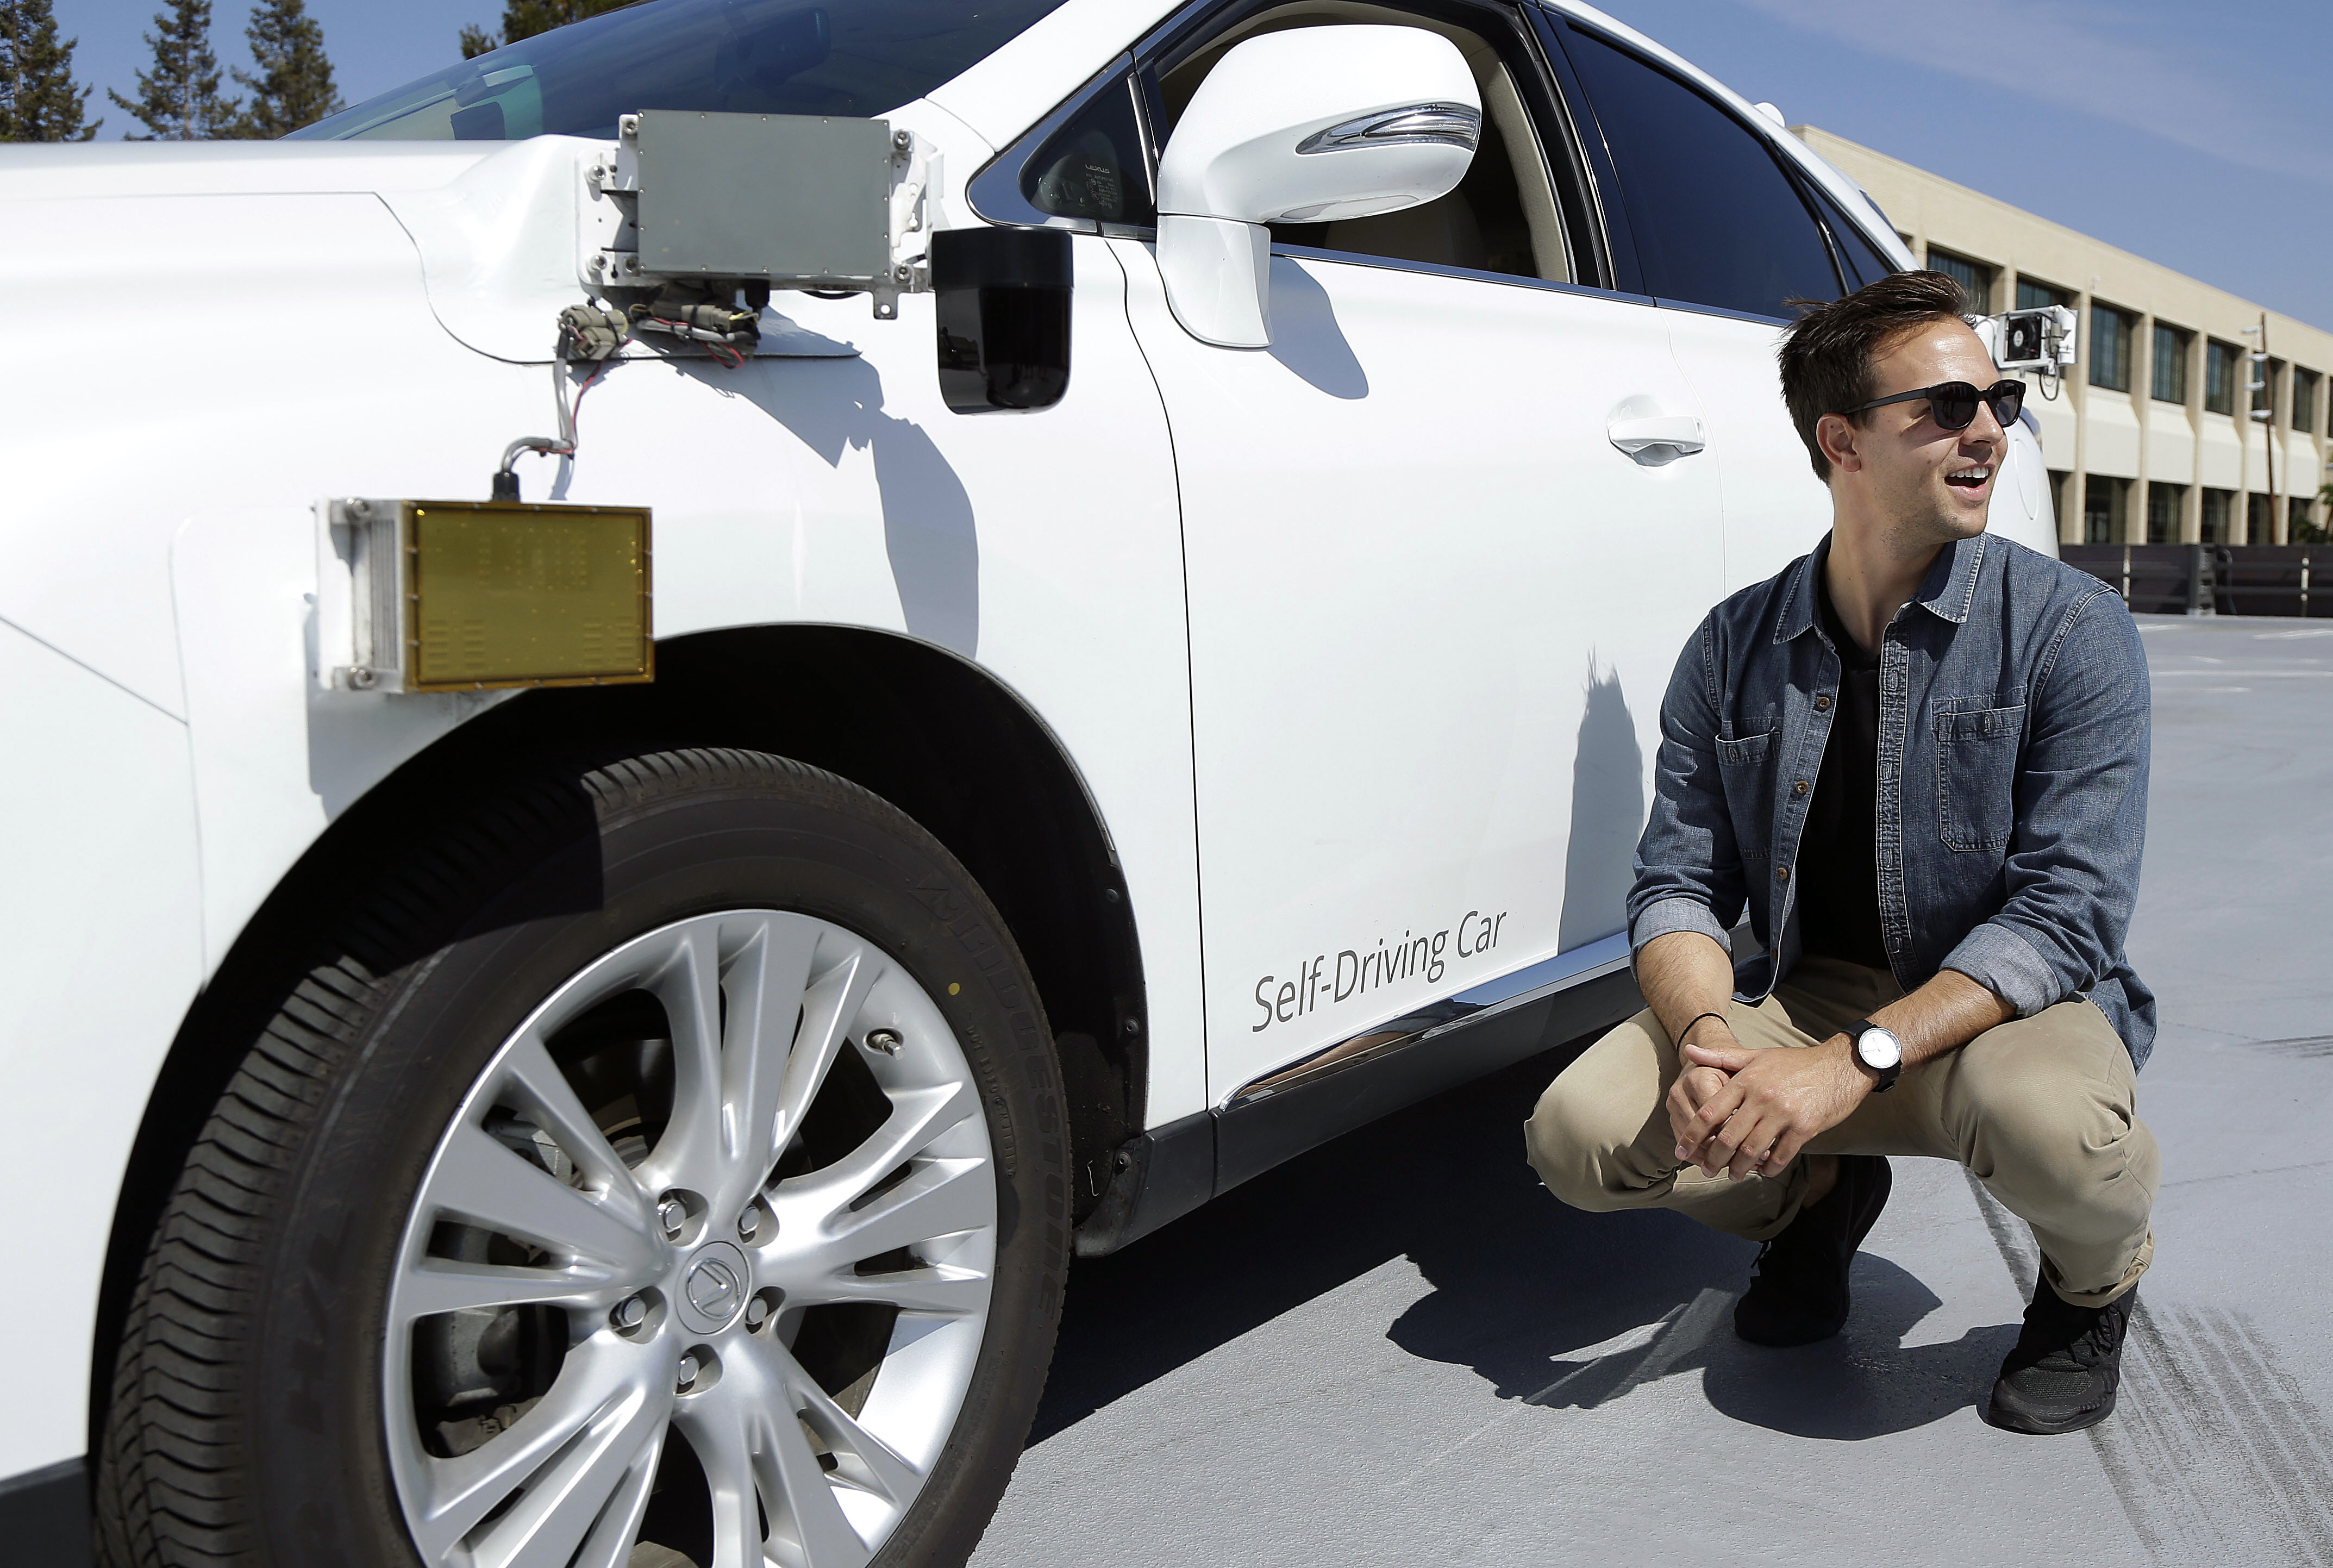 Googles driverless car drivers ride a career less traveled  WNWO